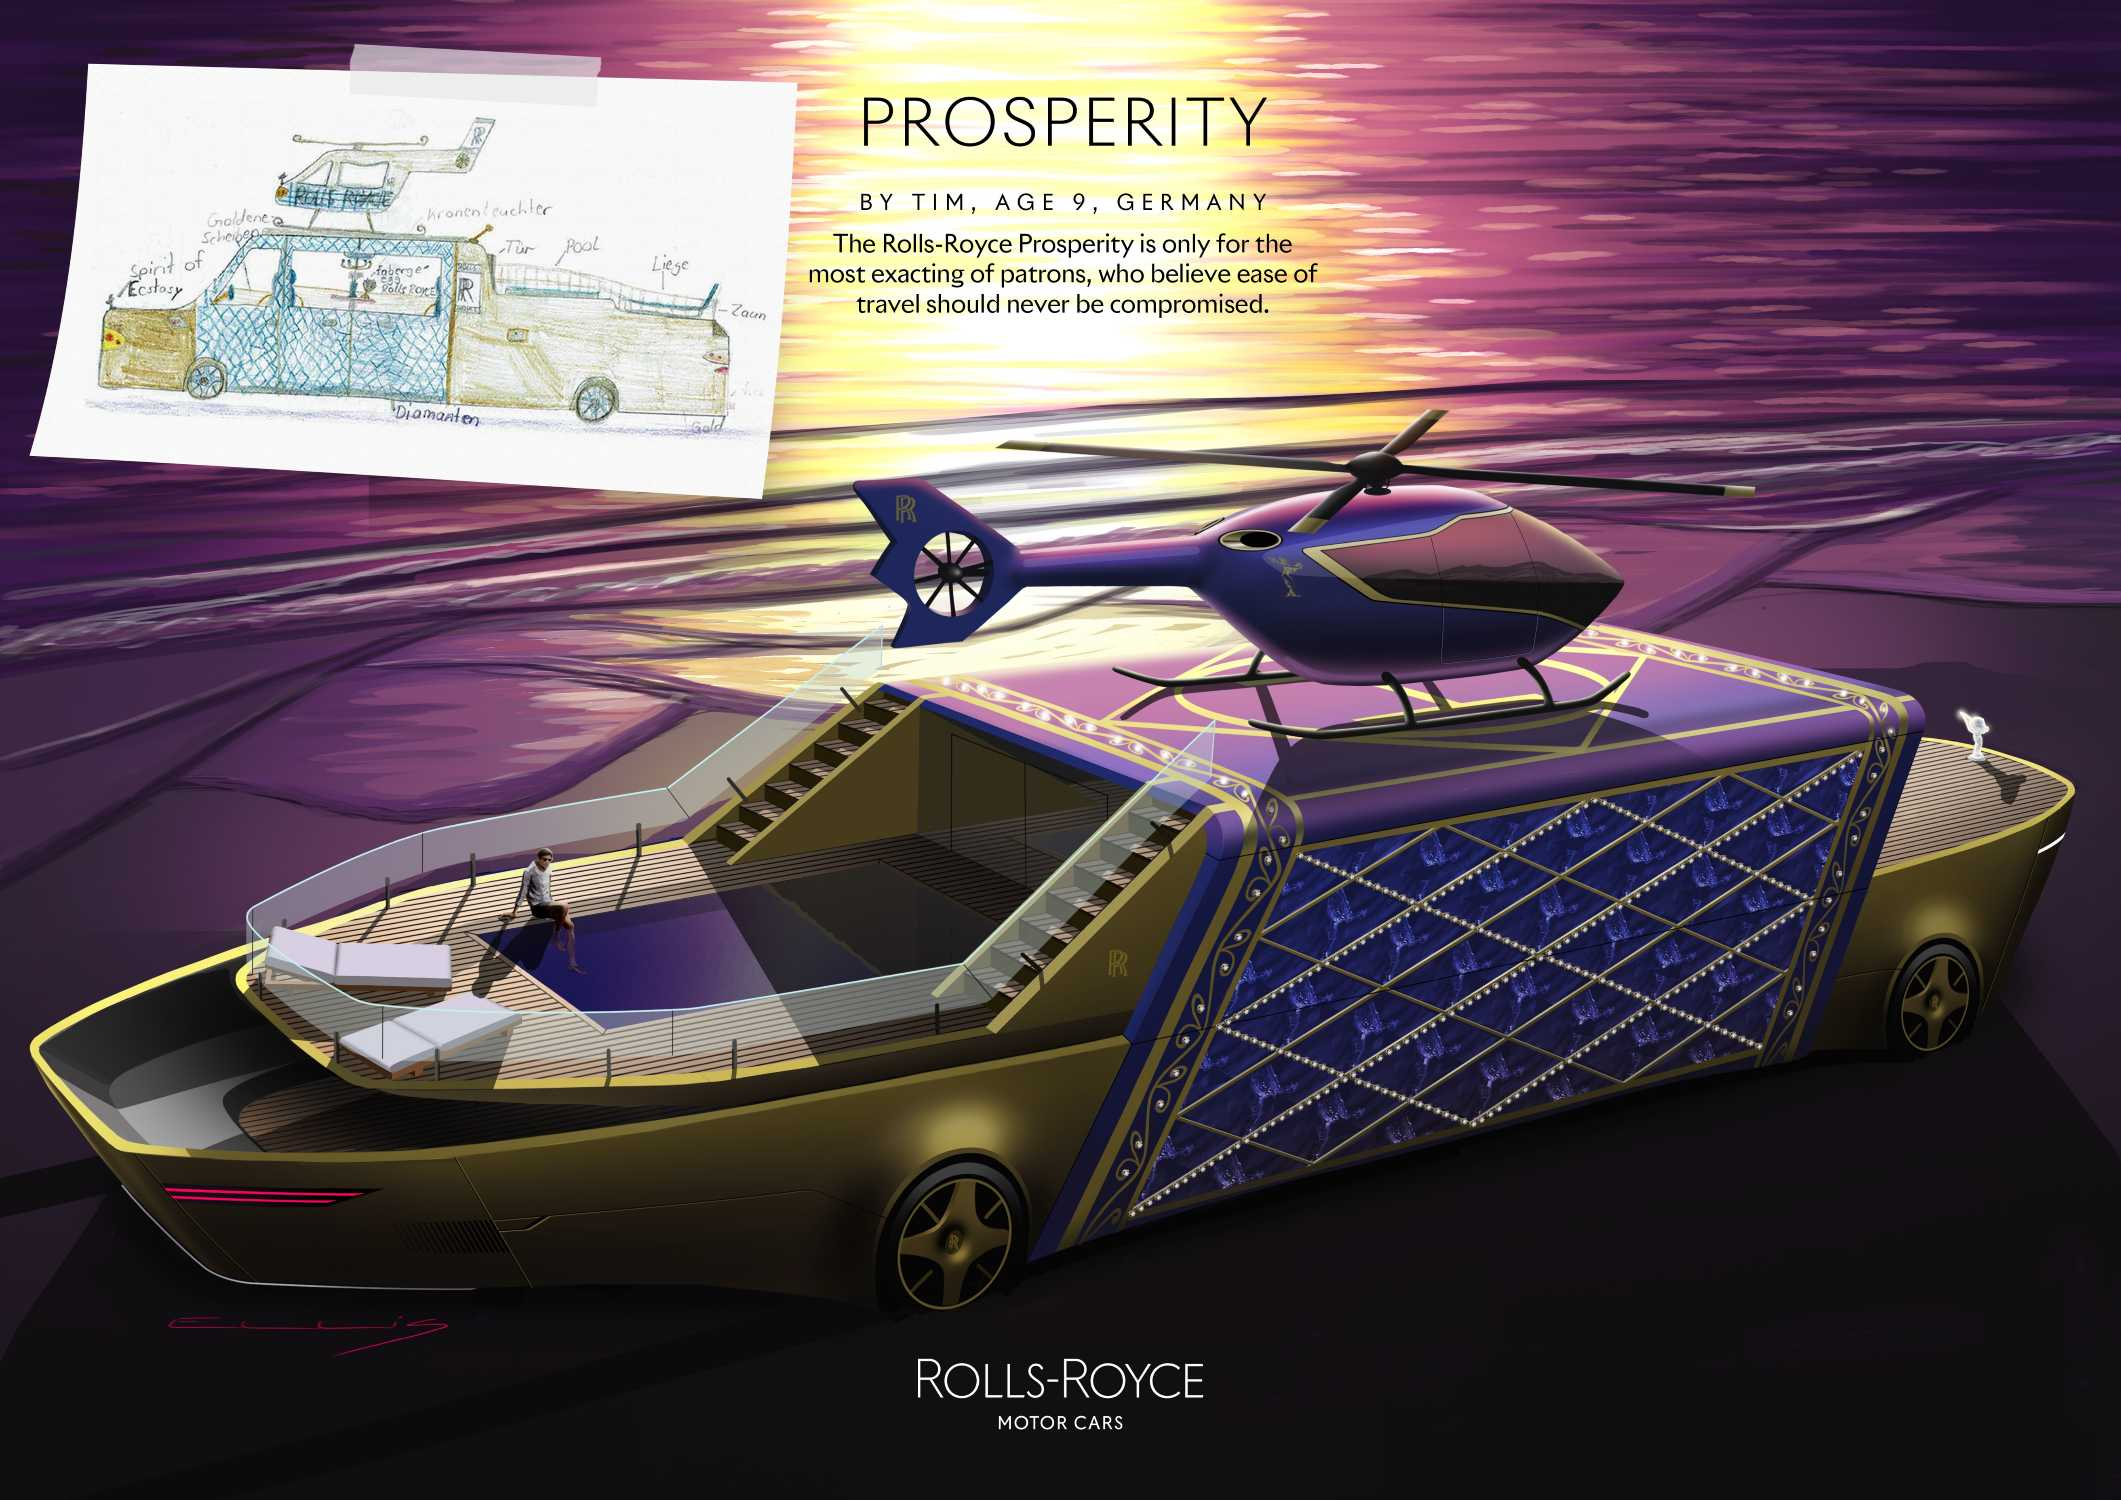 PROSPERITY BY TIM, AGE 9, GERMANY. HIGHLY COMMENDED IN THE ROLLS-ROYCE YOUNG DESIGNER COMPETITION.